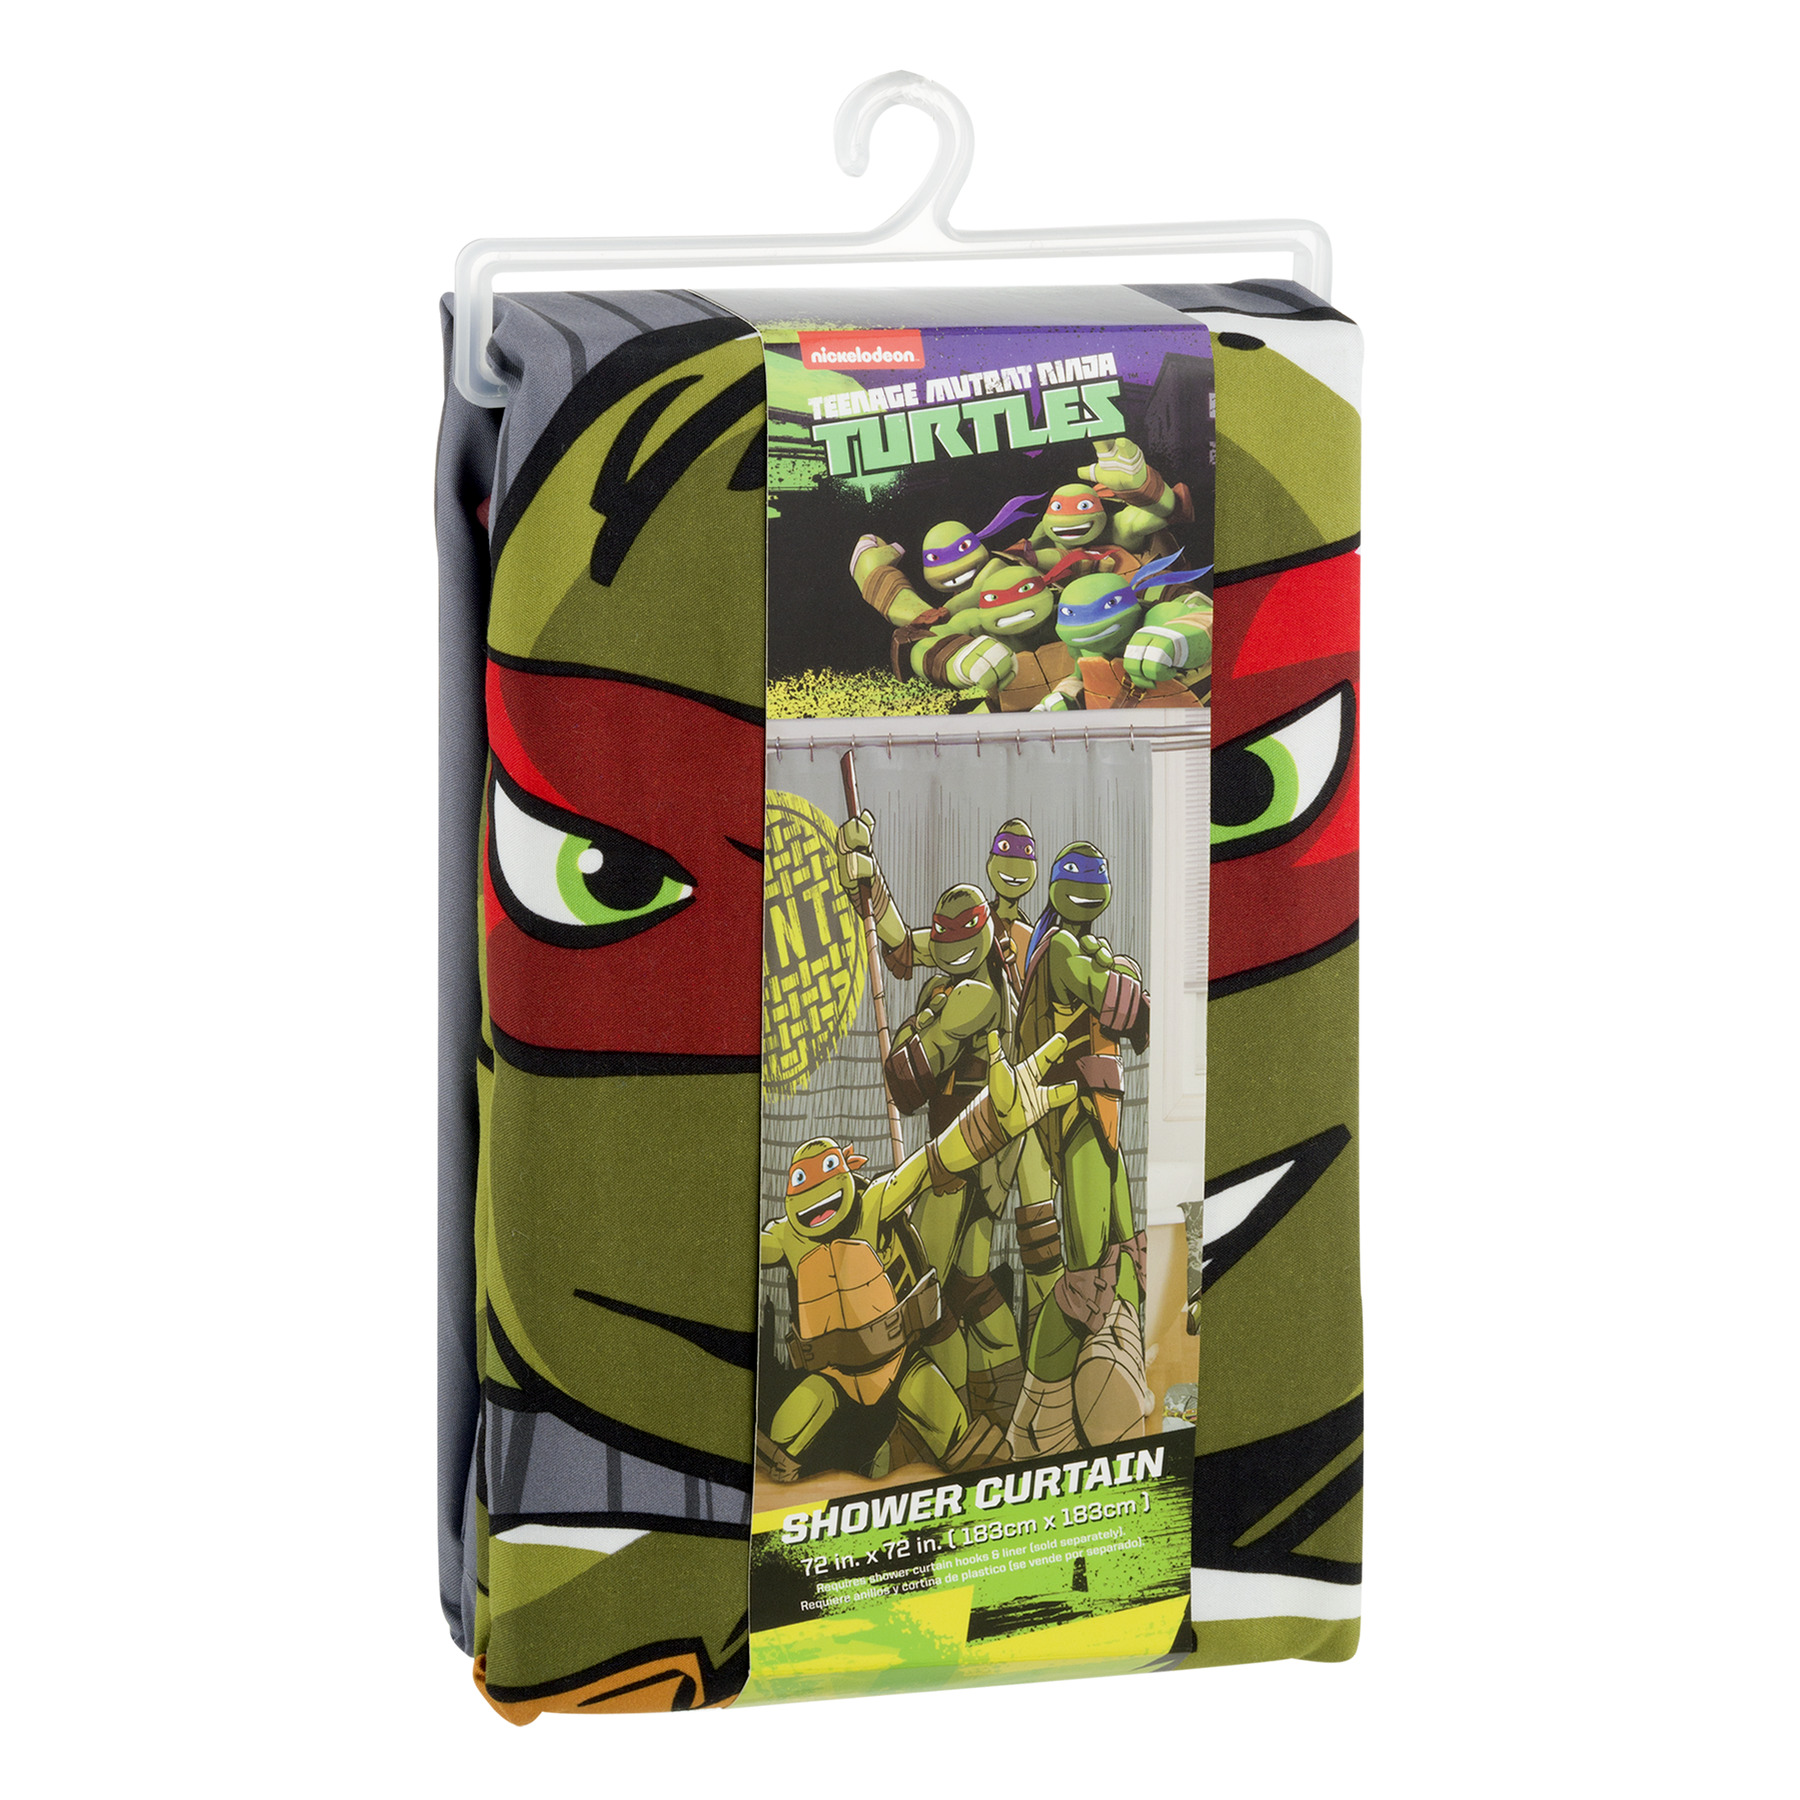 New In Box Teenage Mutant Ninja Turtles Shower Curtain; 72x72